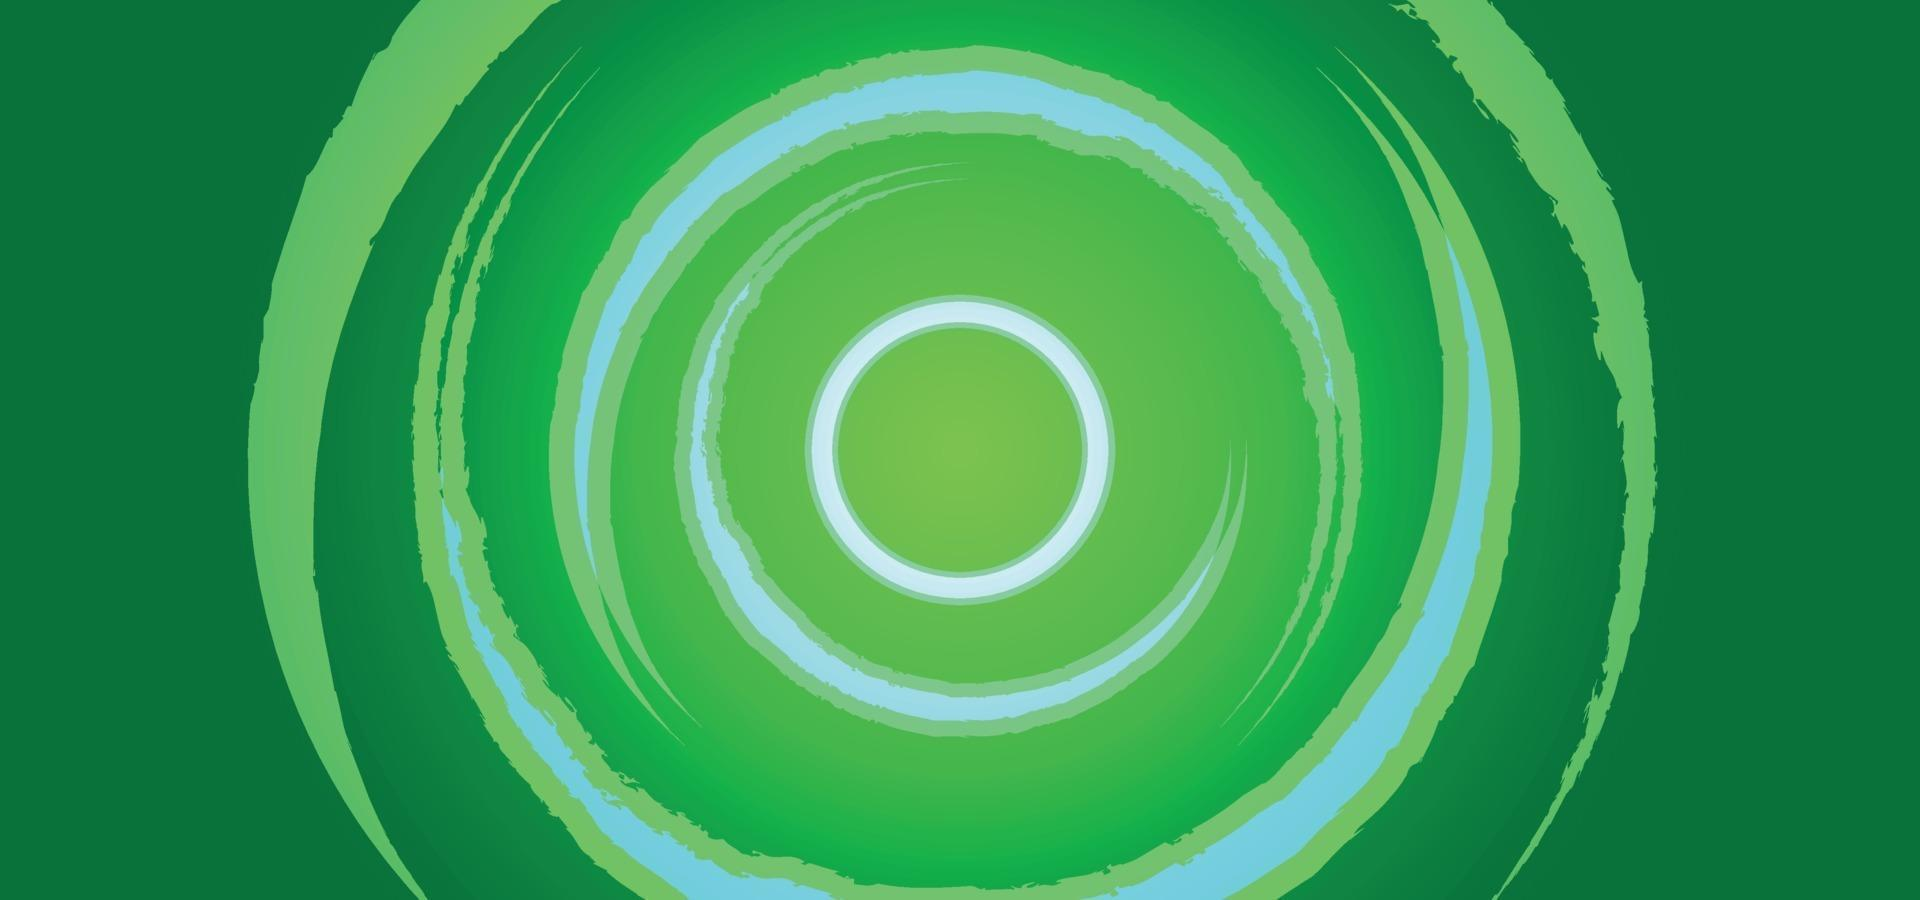 Green  modern abstract background or banner vector